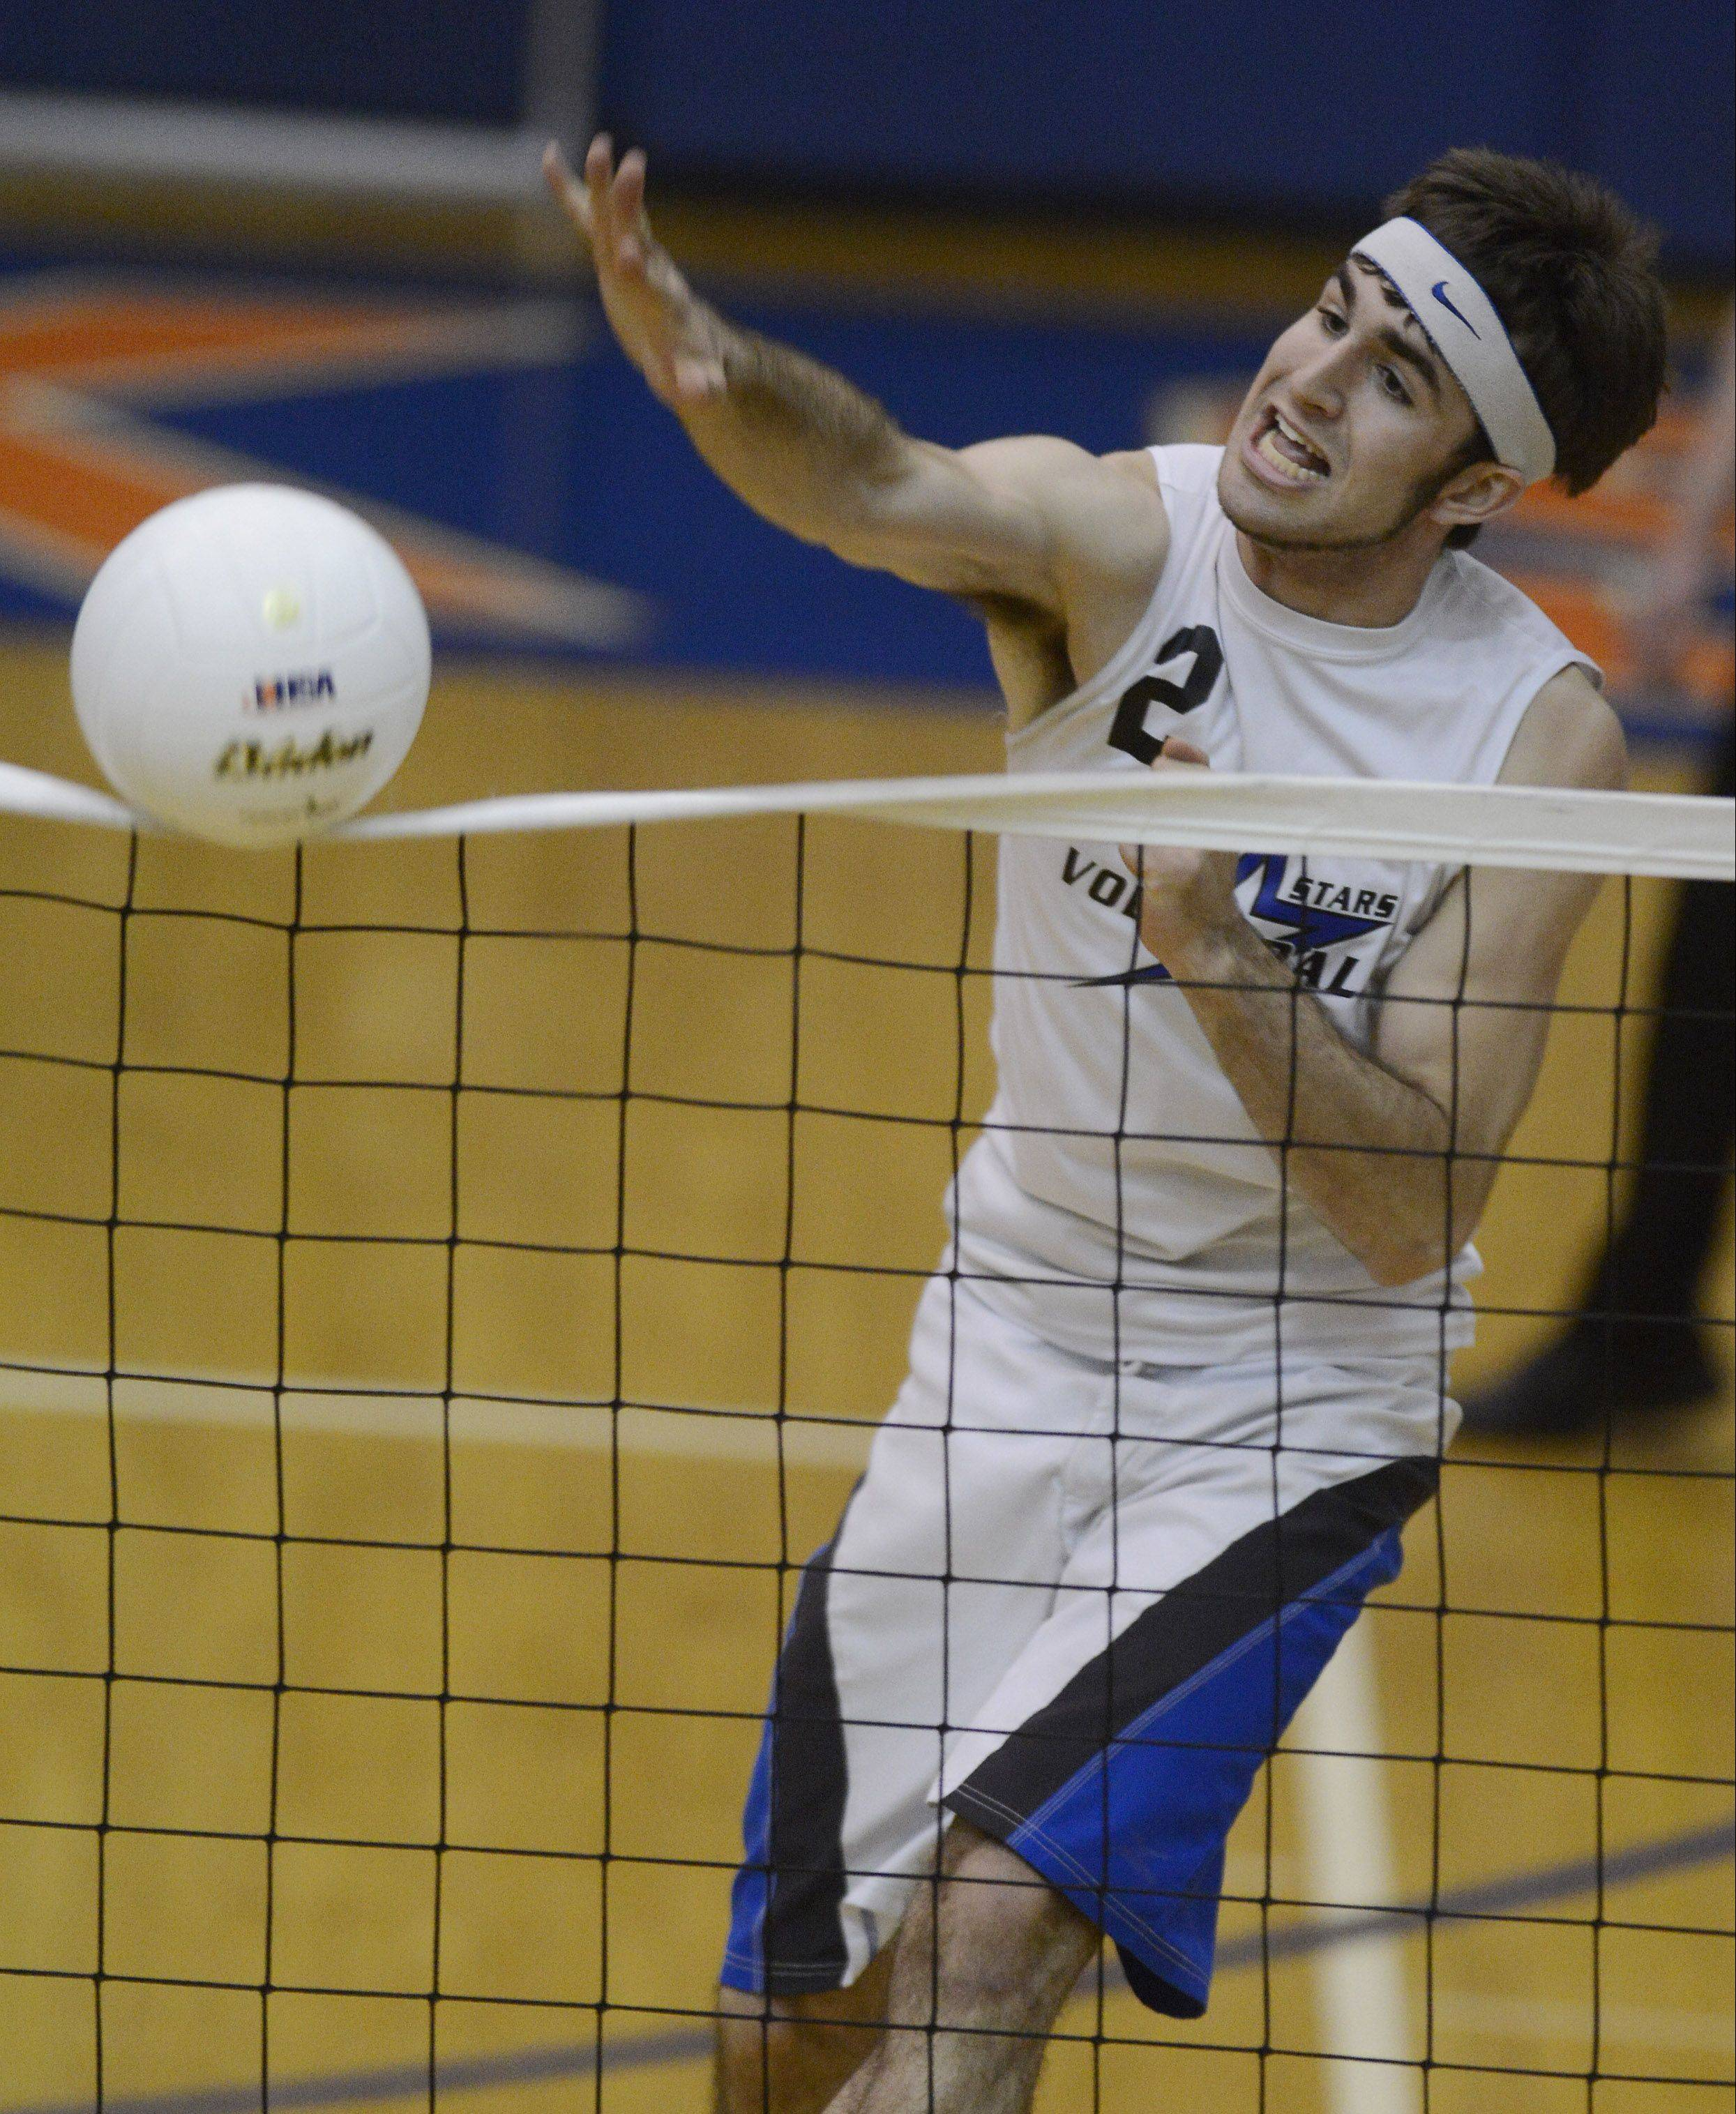 The ball just clears the net as St. Charles North Jonathan Orech gets a kill Saturday against Glenbrook South.